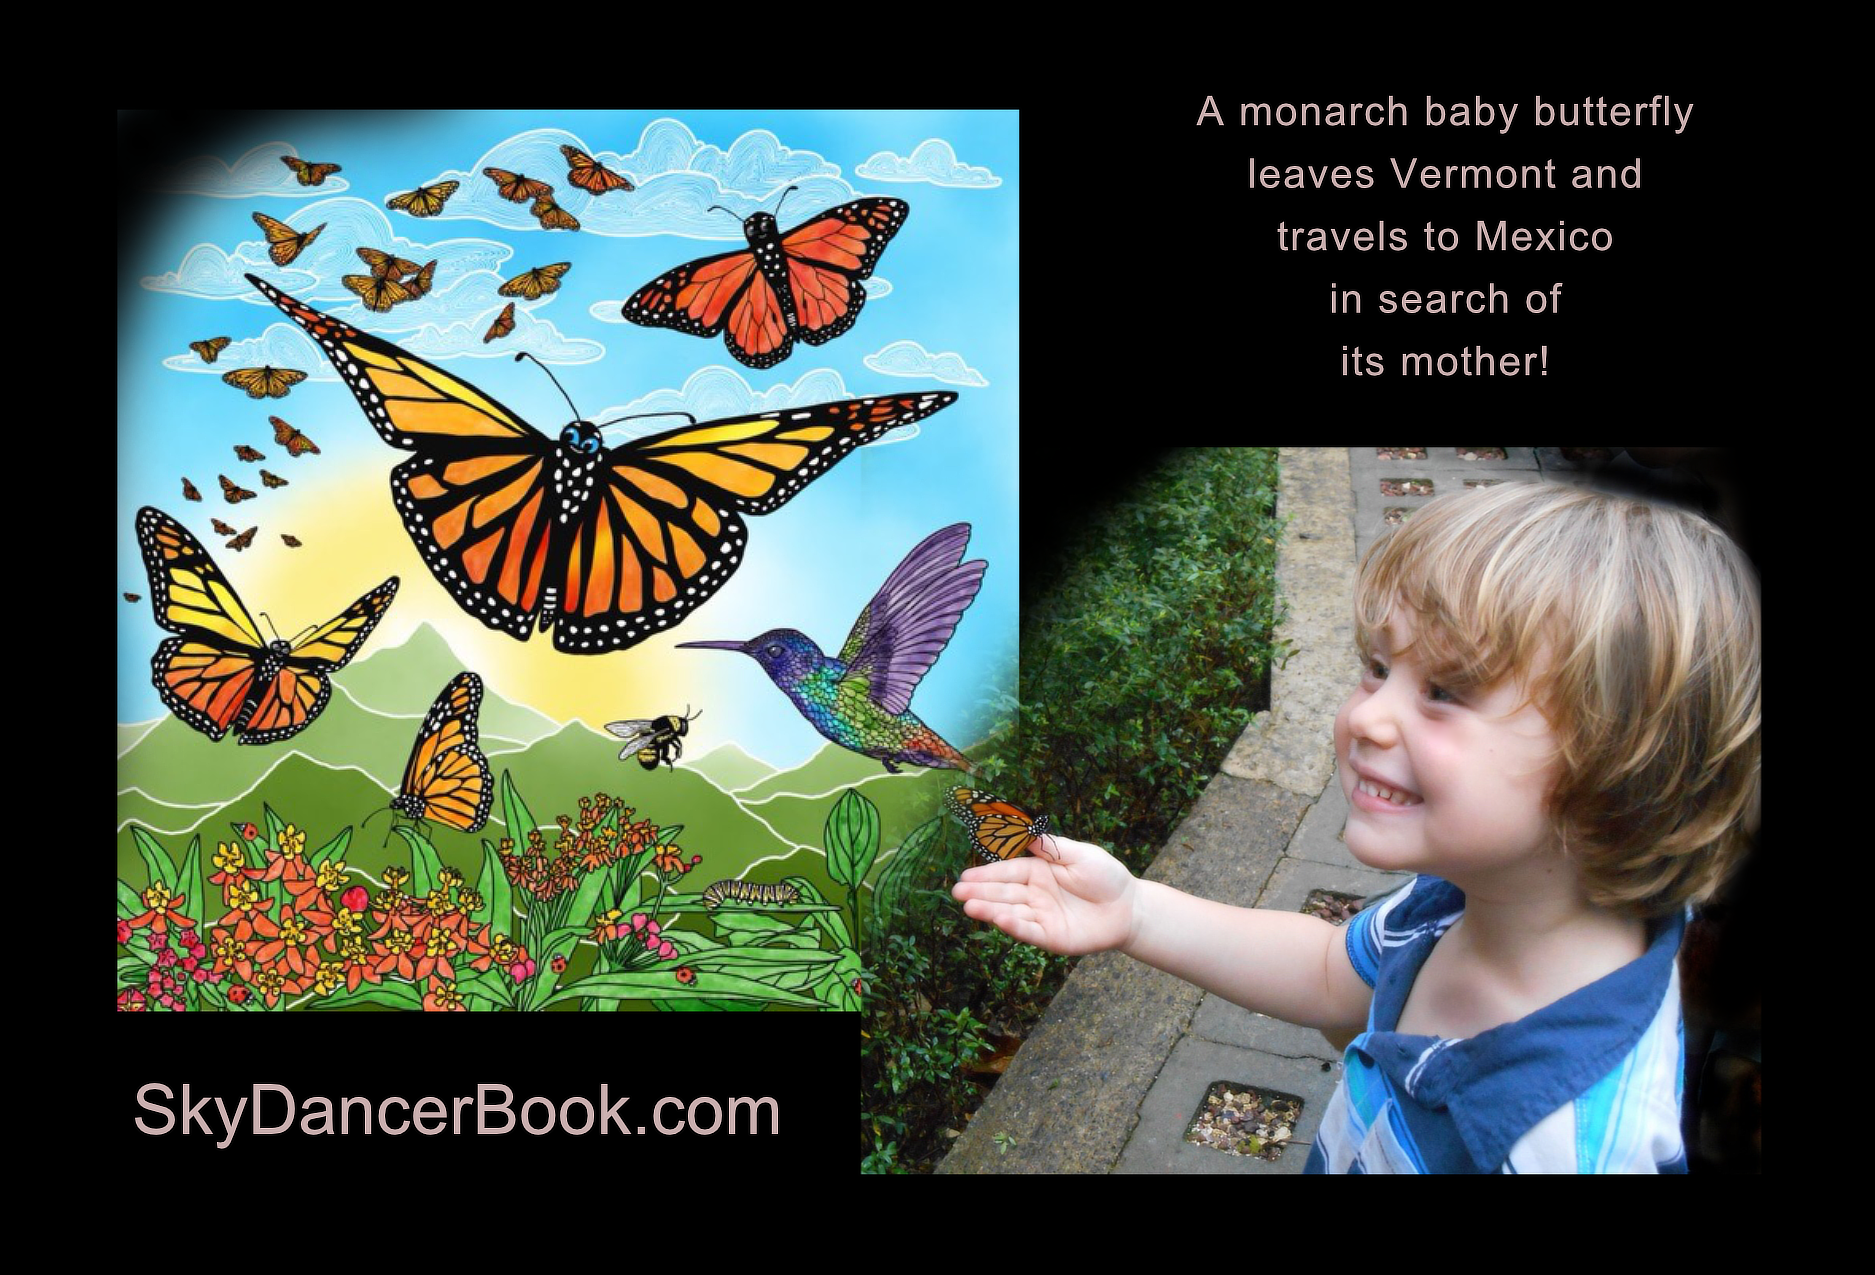 SkyDancerBook, a children's illustrated book about the Monarch butterfly migrations by Tania DeGregorio on Amazon.com